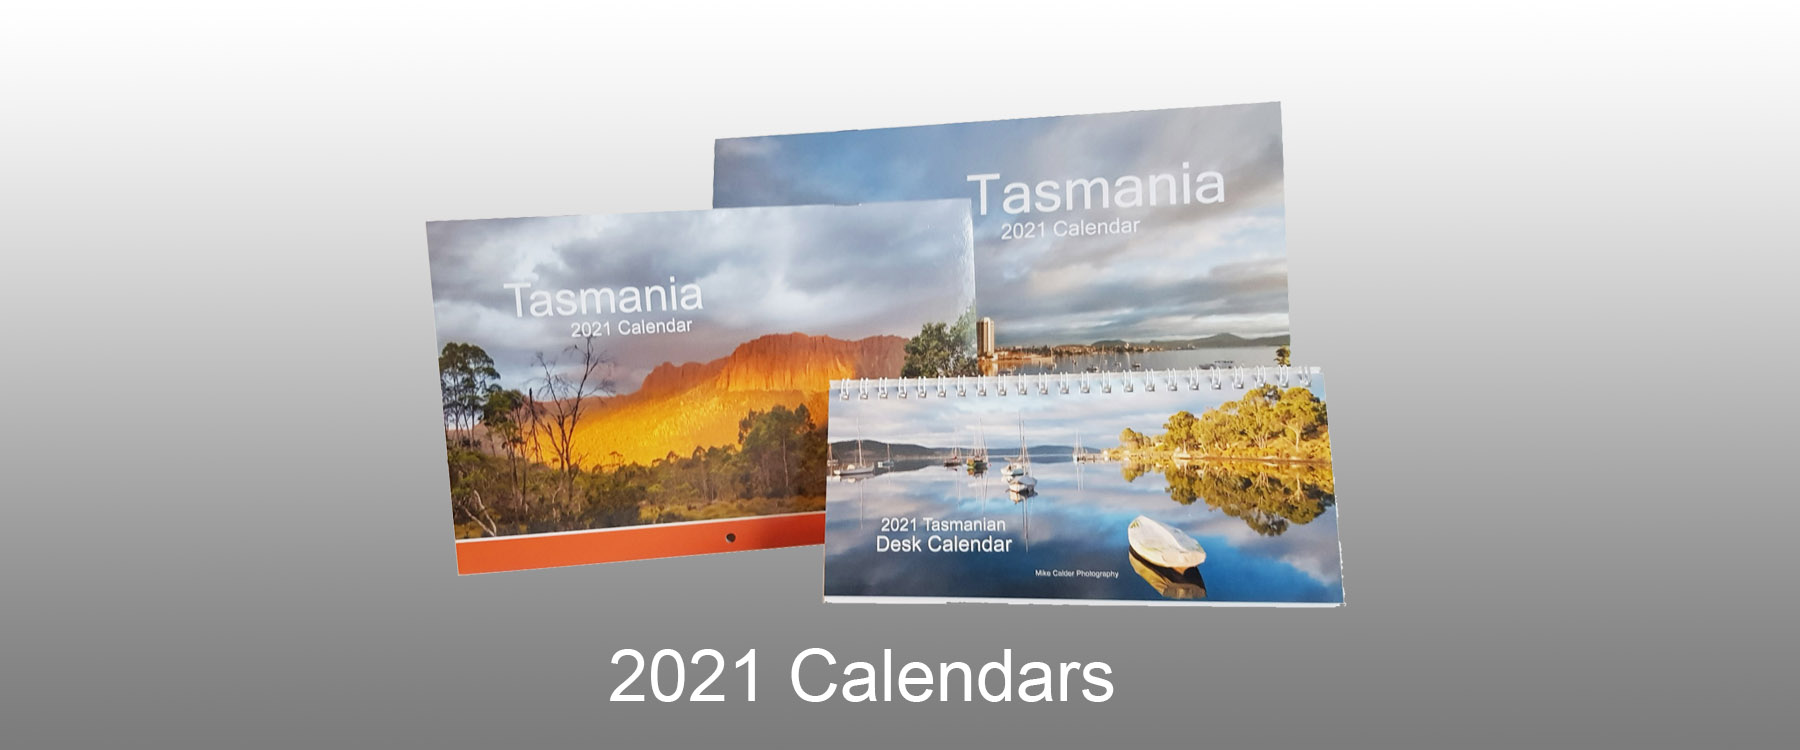 2021 calendars with background